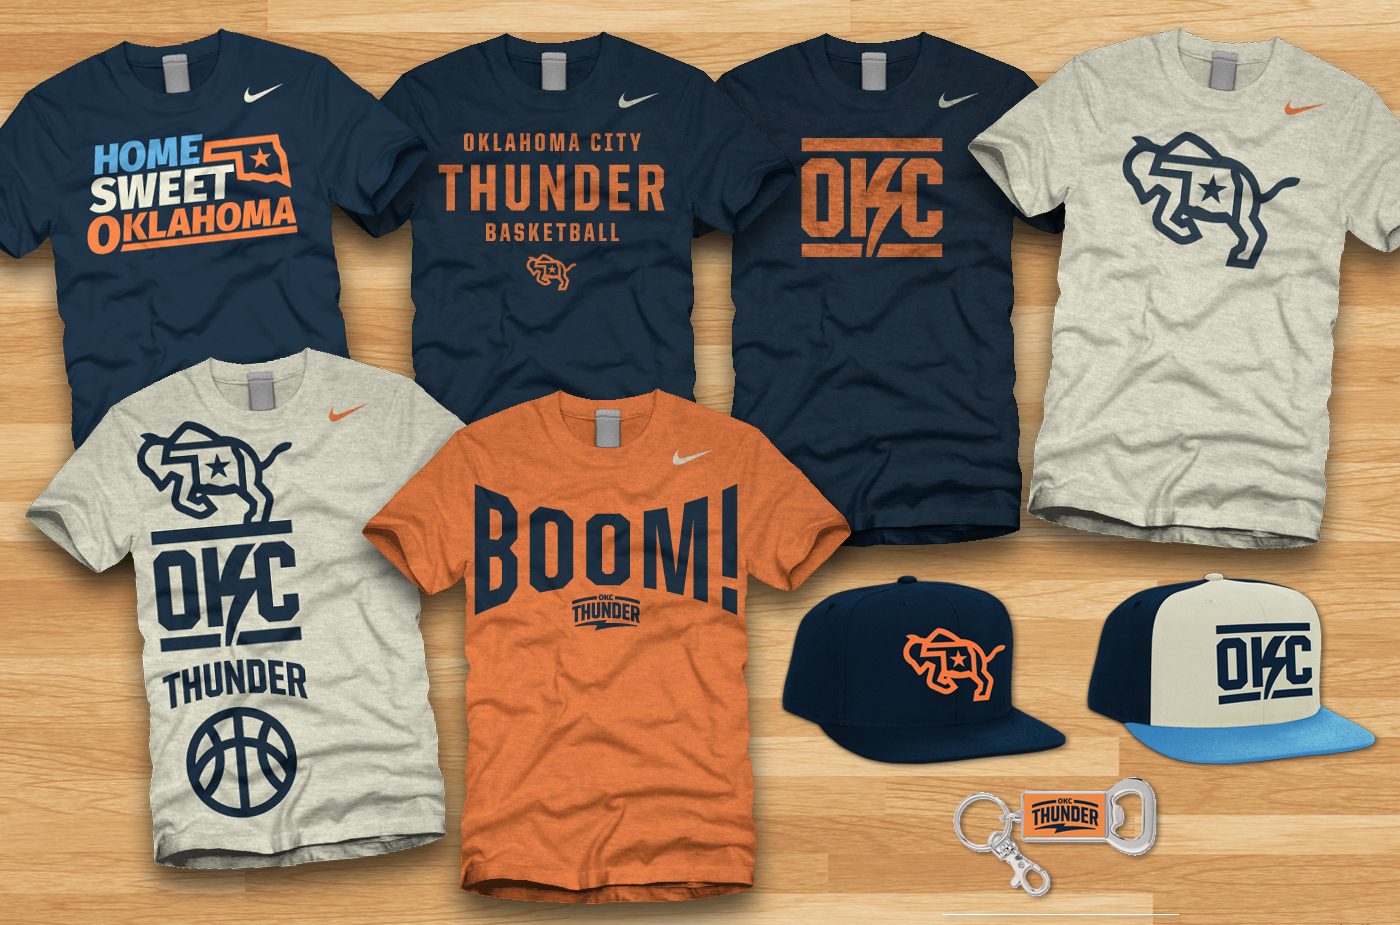 Oklahoma City Thunder Re-Brand